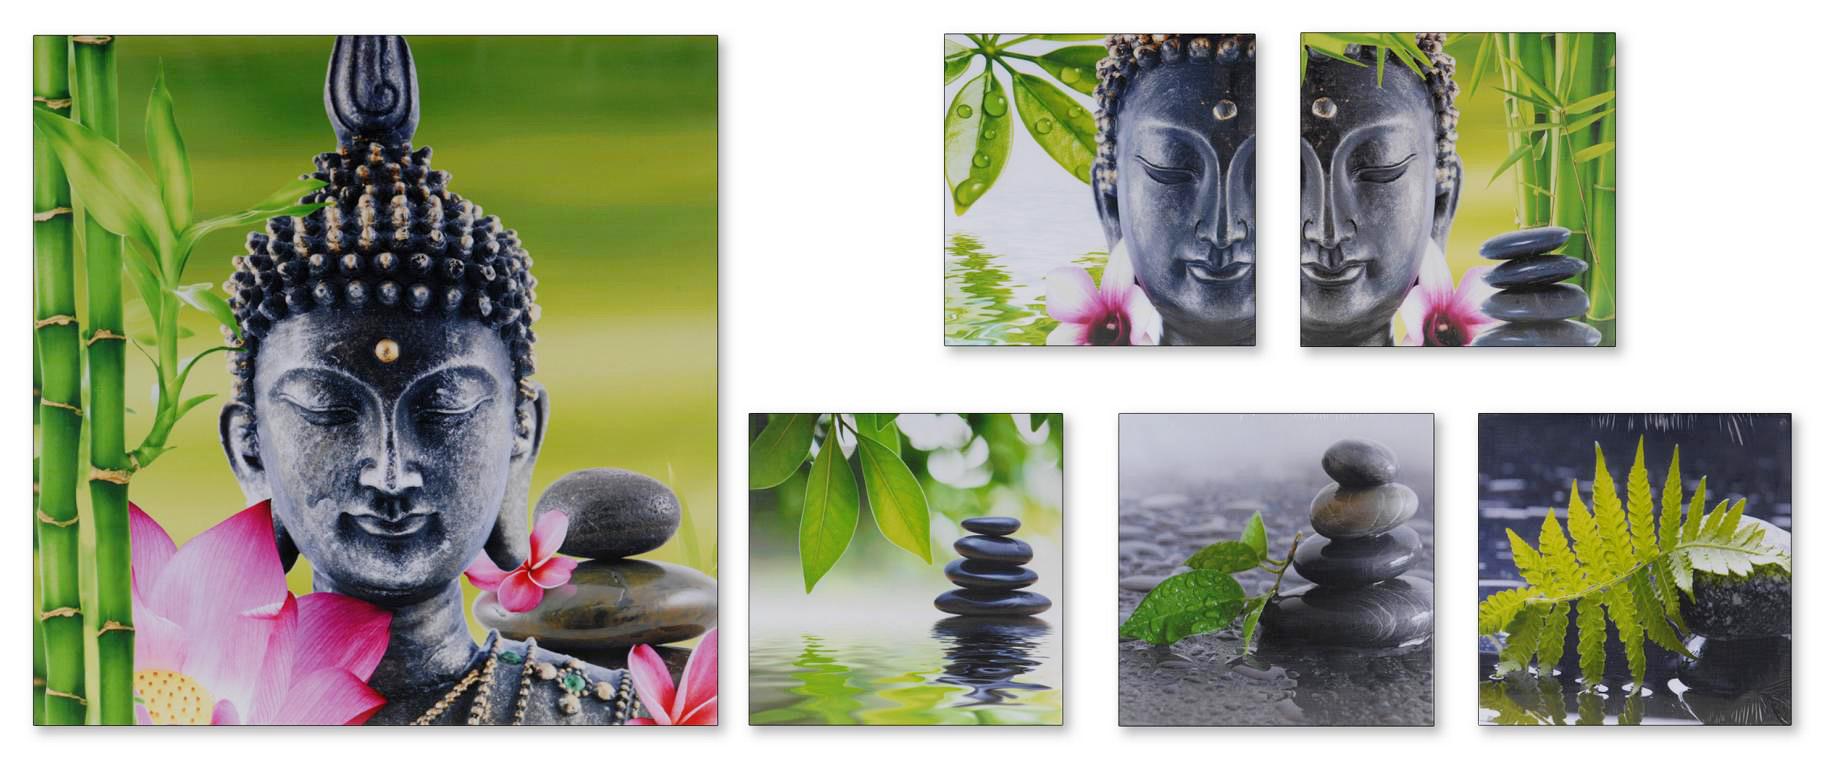 zen buddha bilder leinwand auf spannrahmen 6er set dekoration buddhismus ebay. Black Bedroom Furniture Sets. Home Design Ideas